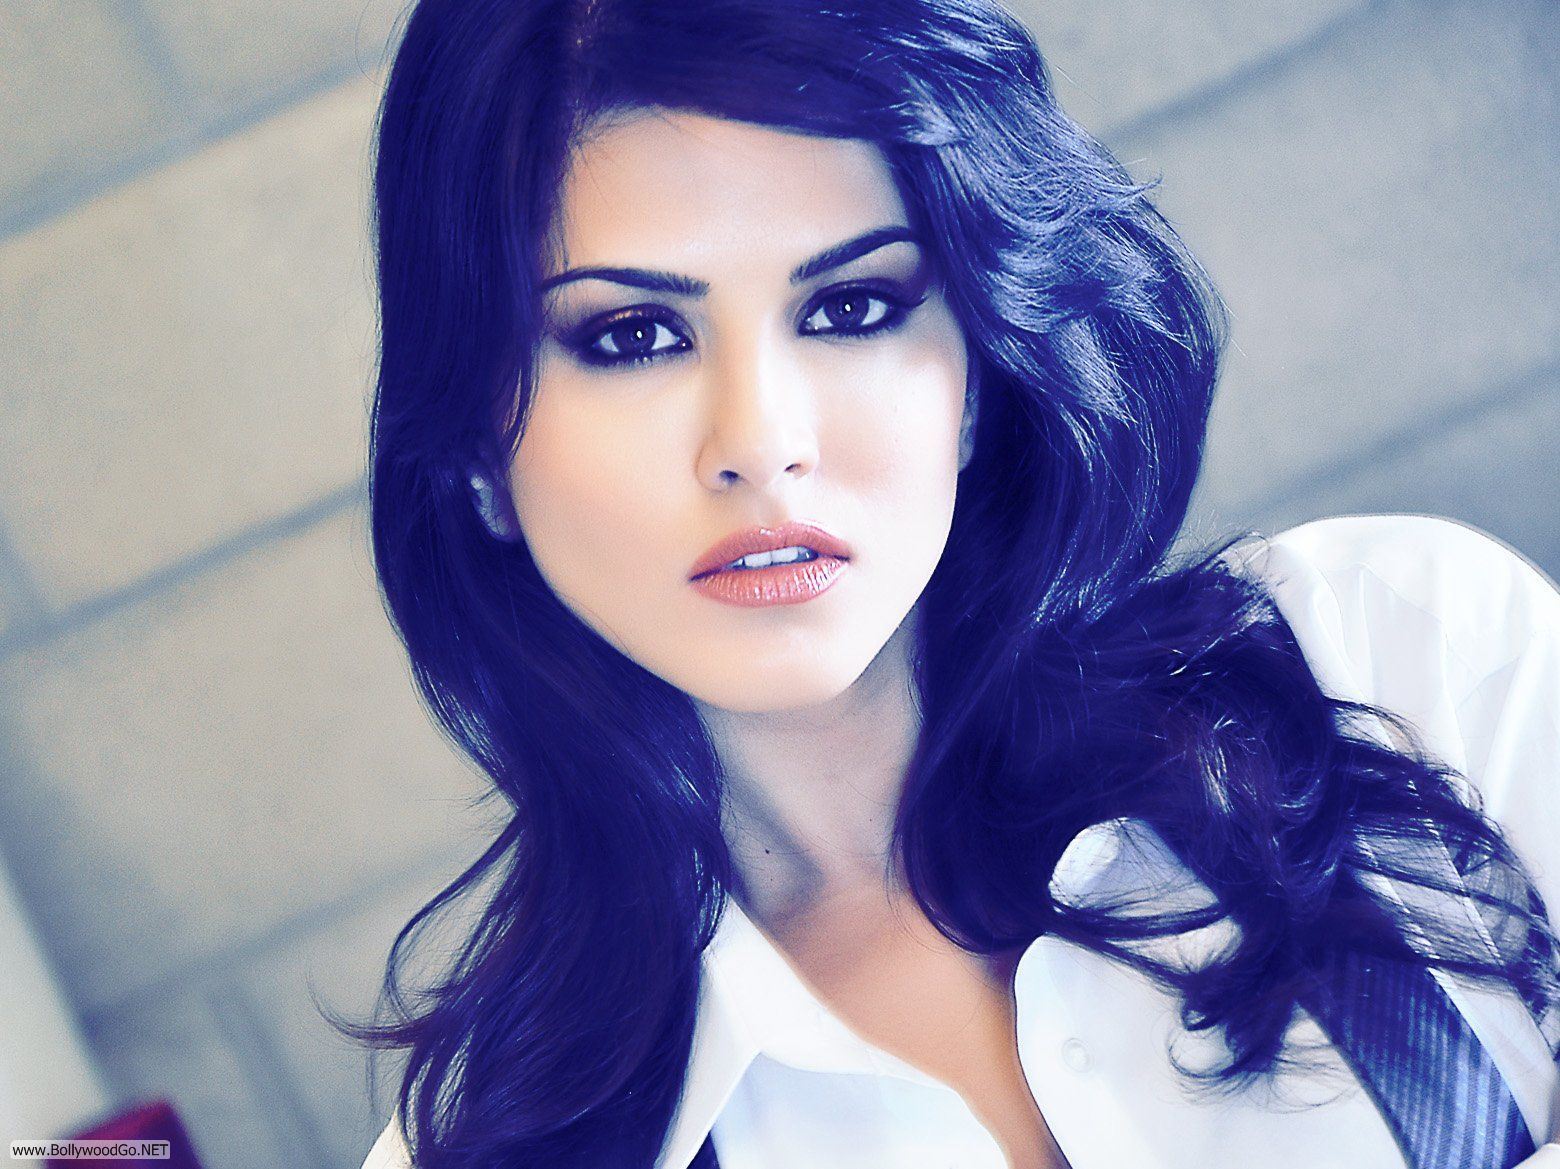 Download Sunny Leone Innocent Look Wallpaper For Mobile Cell Phone